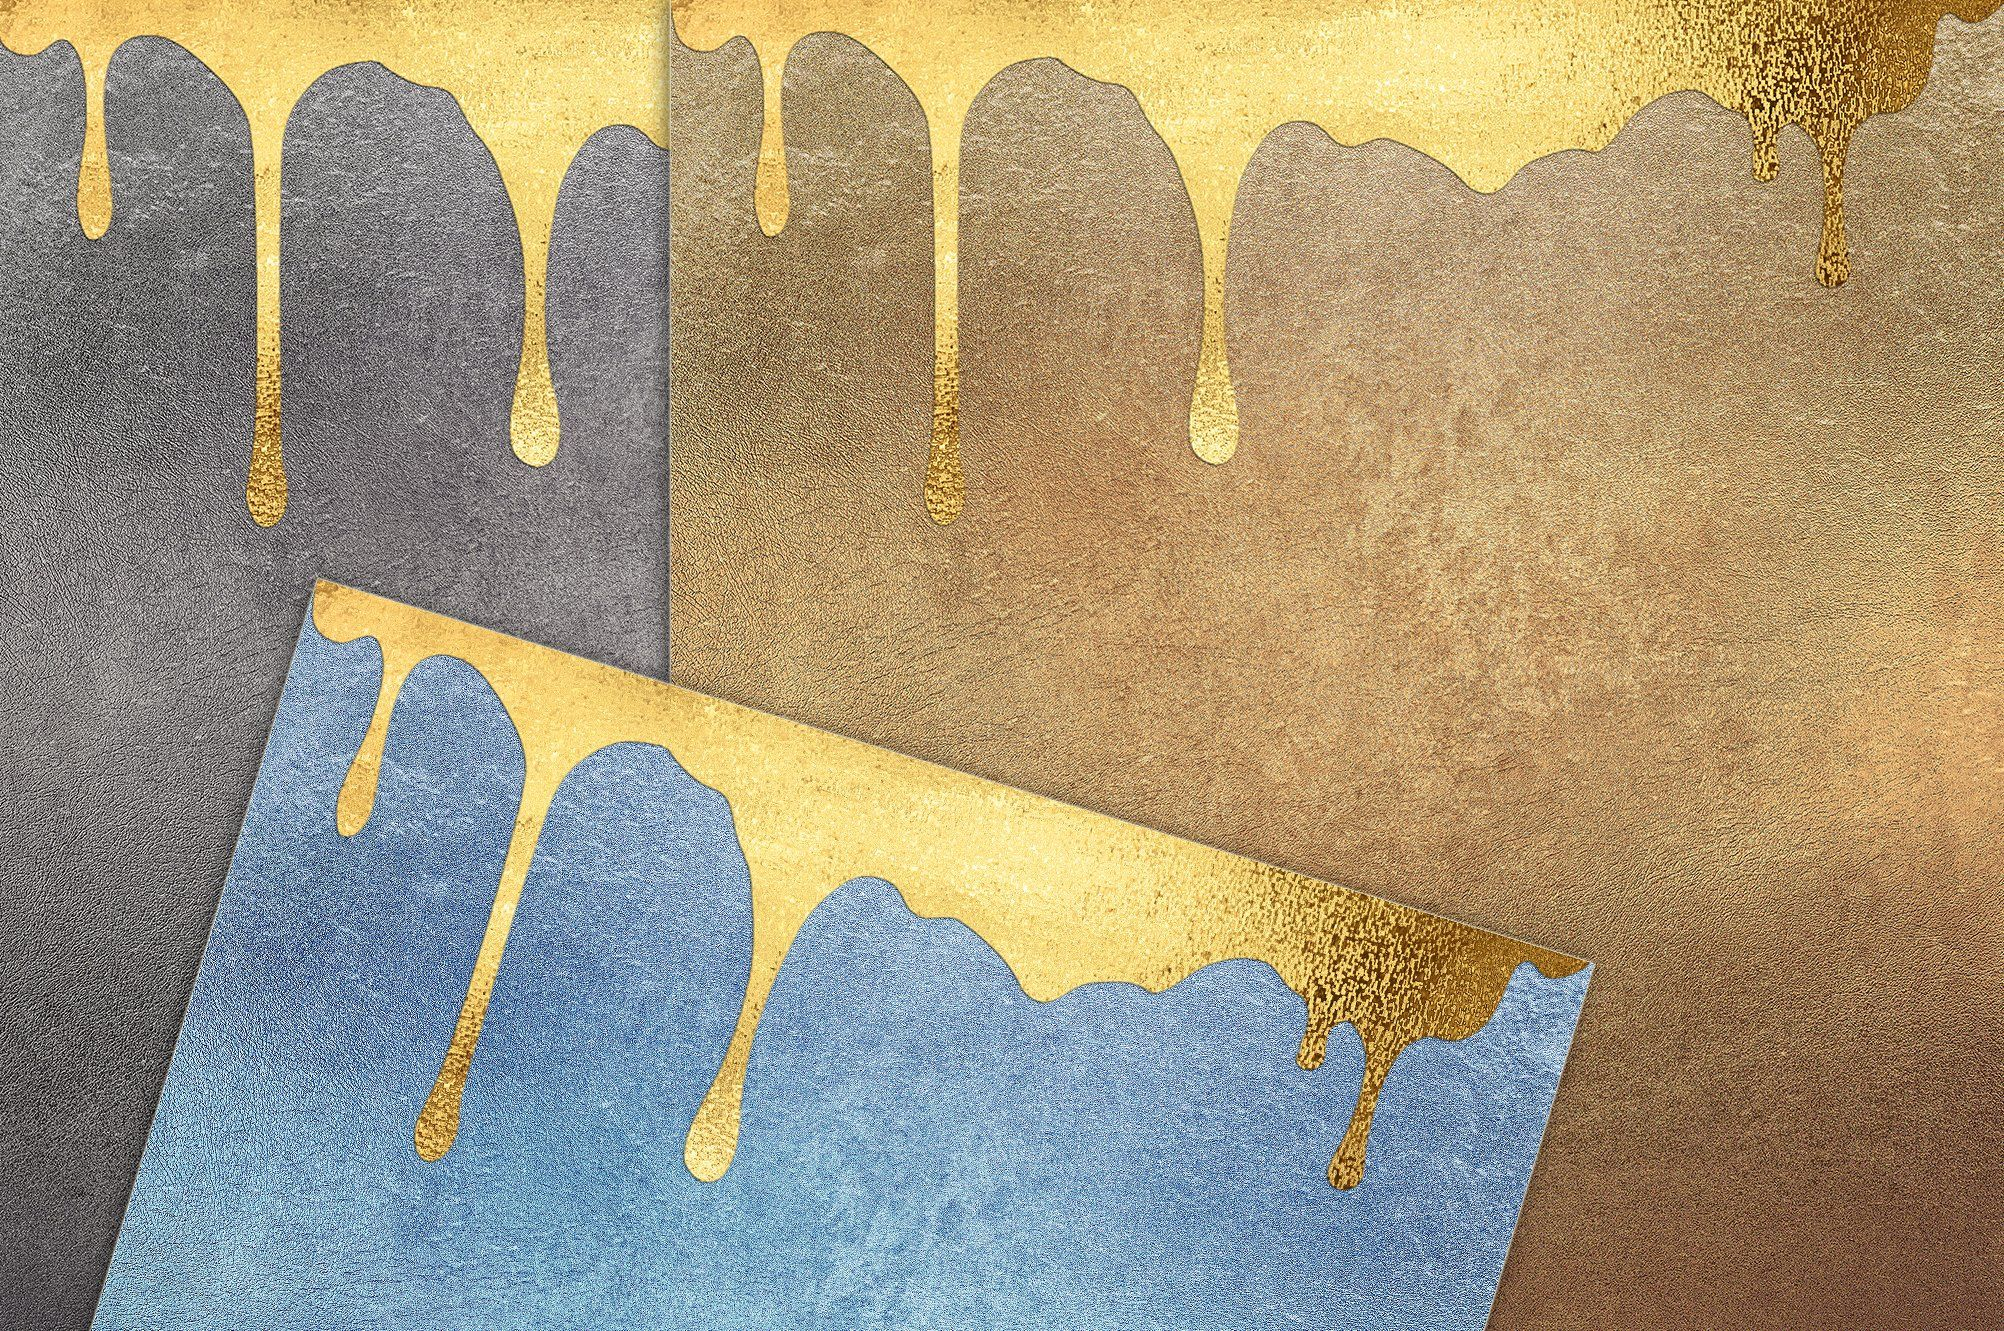 Gold Foil Dripping Glitter Texture Graphic Projects Gold Drip Digital Paper